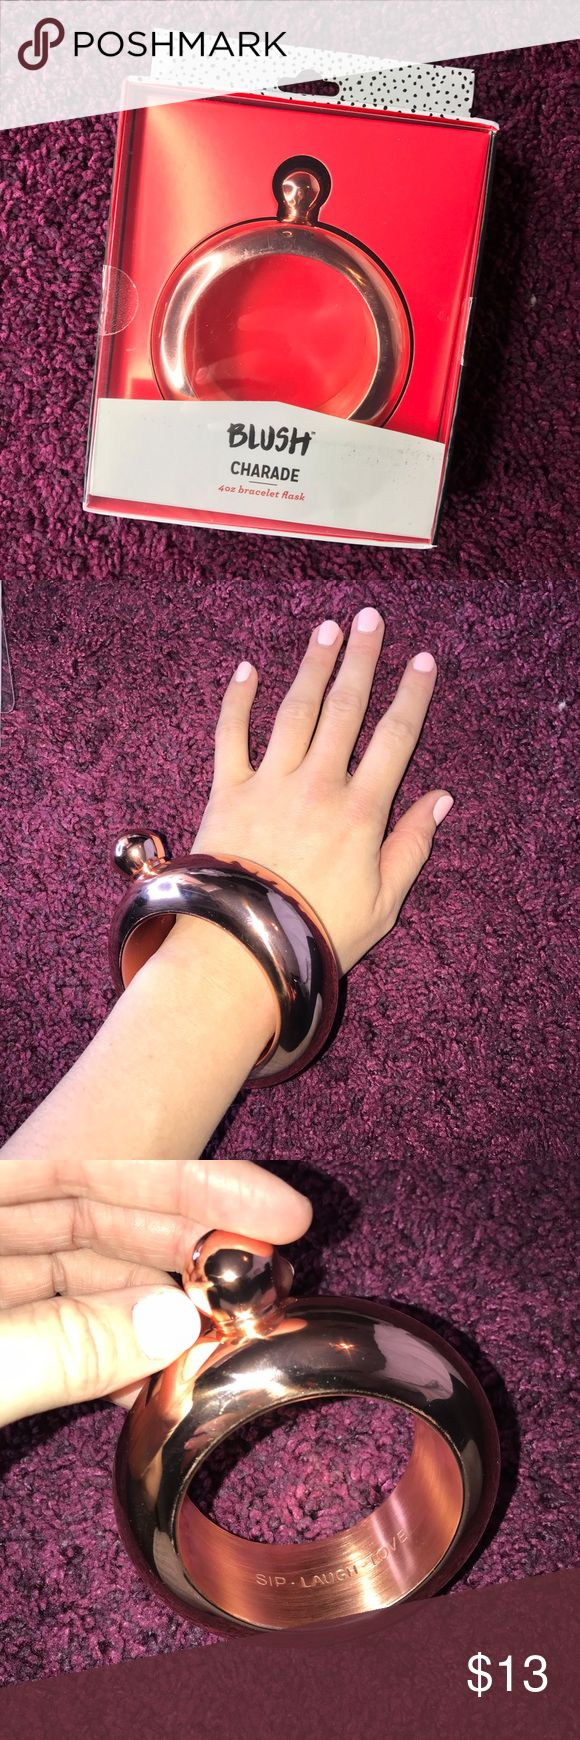 Braclet Flask NWT Super fun braclet Flask! Never used new in box! Blush Jewelry Bracelets